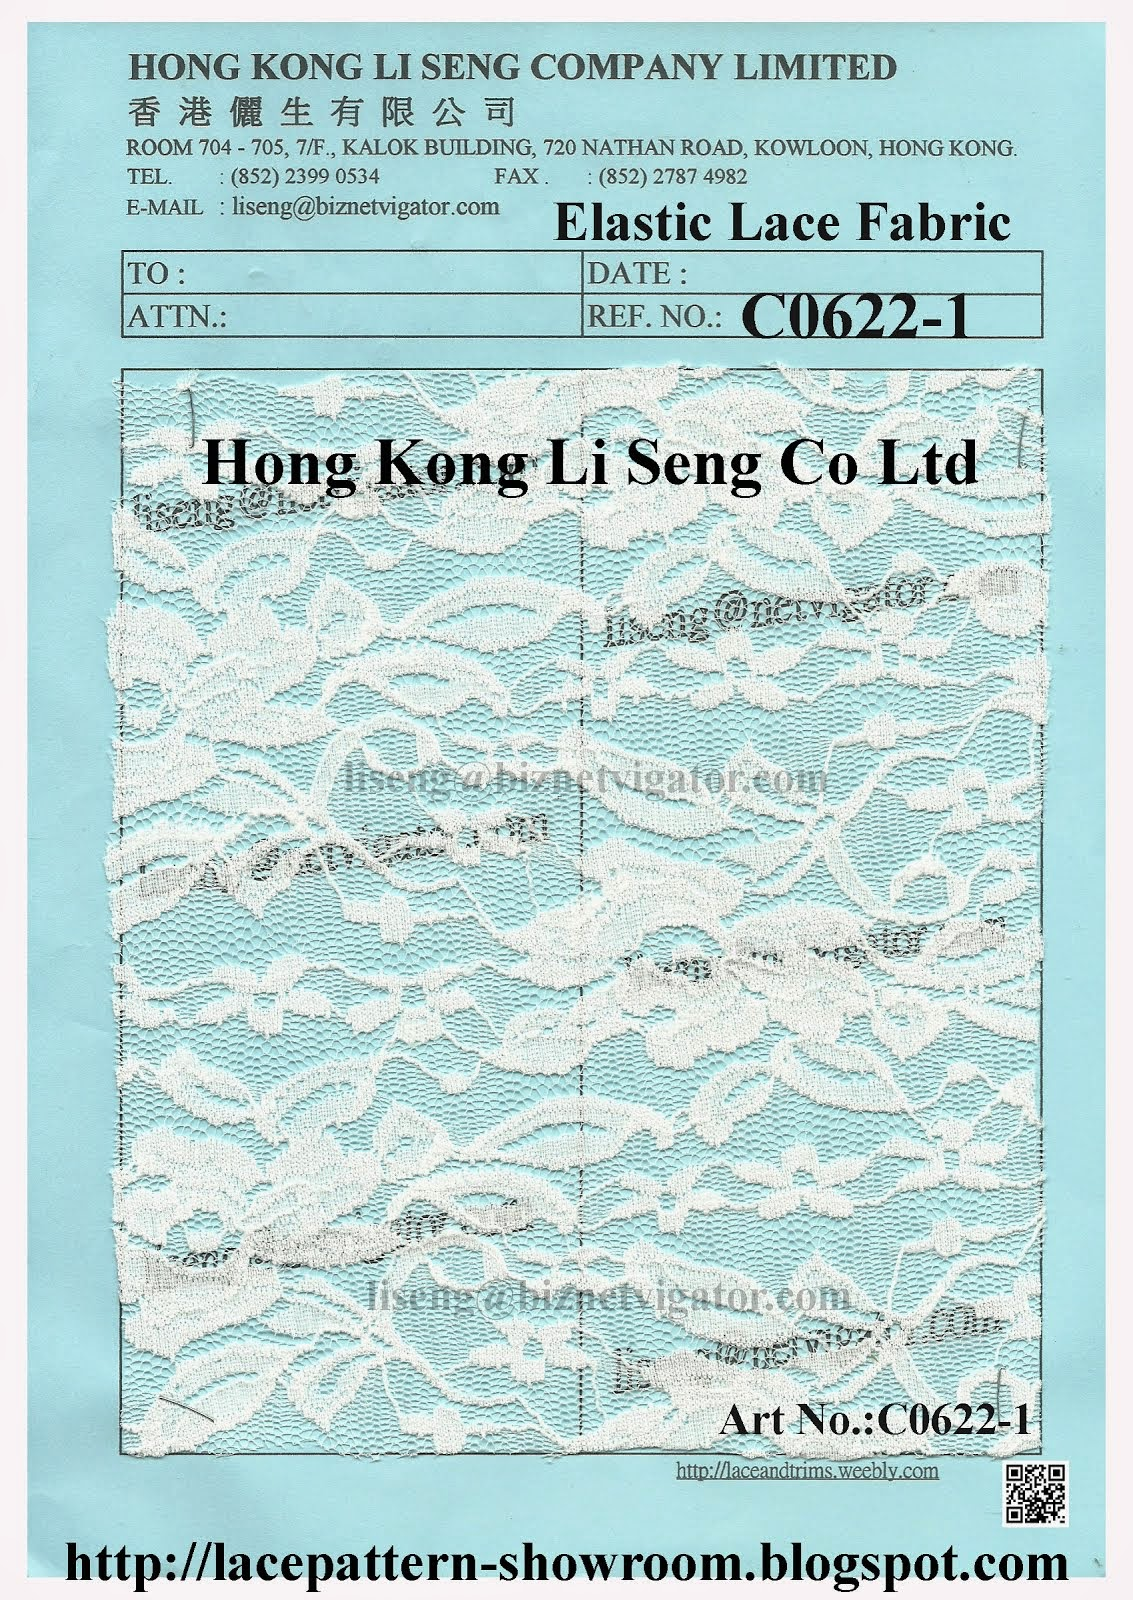 Elastic Lace Fabric Wholesaler and Supplier - Hong Kong Li Seng Co Ltd